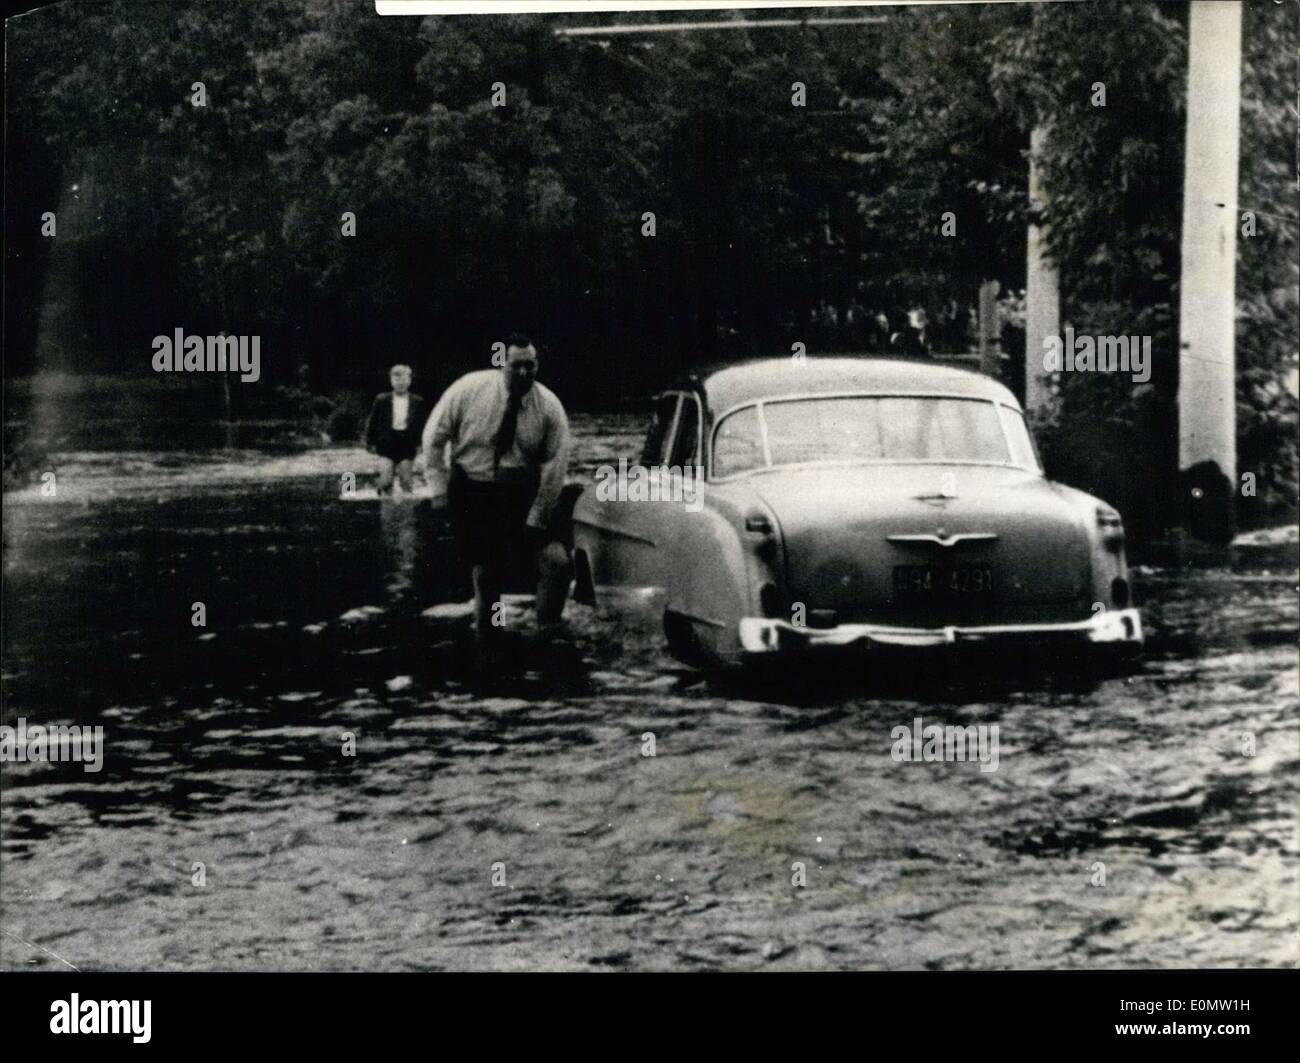 Jul. 07, 1956 - 25 millions DM is the injury through the high water only in the eastern part of Westfalen/Germany. Till yesterday night it has rained all the time for 60 hours. Photo shows a car driver was stopped by the high floods near Porta Westfalica/Germany. - Stock Image